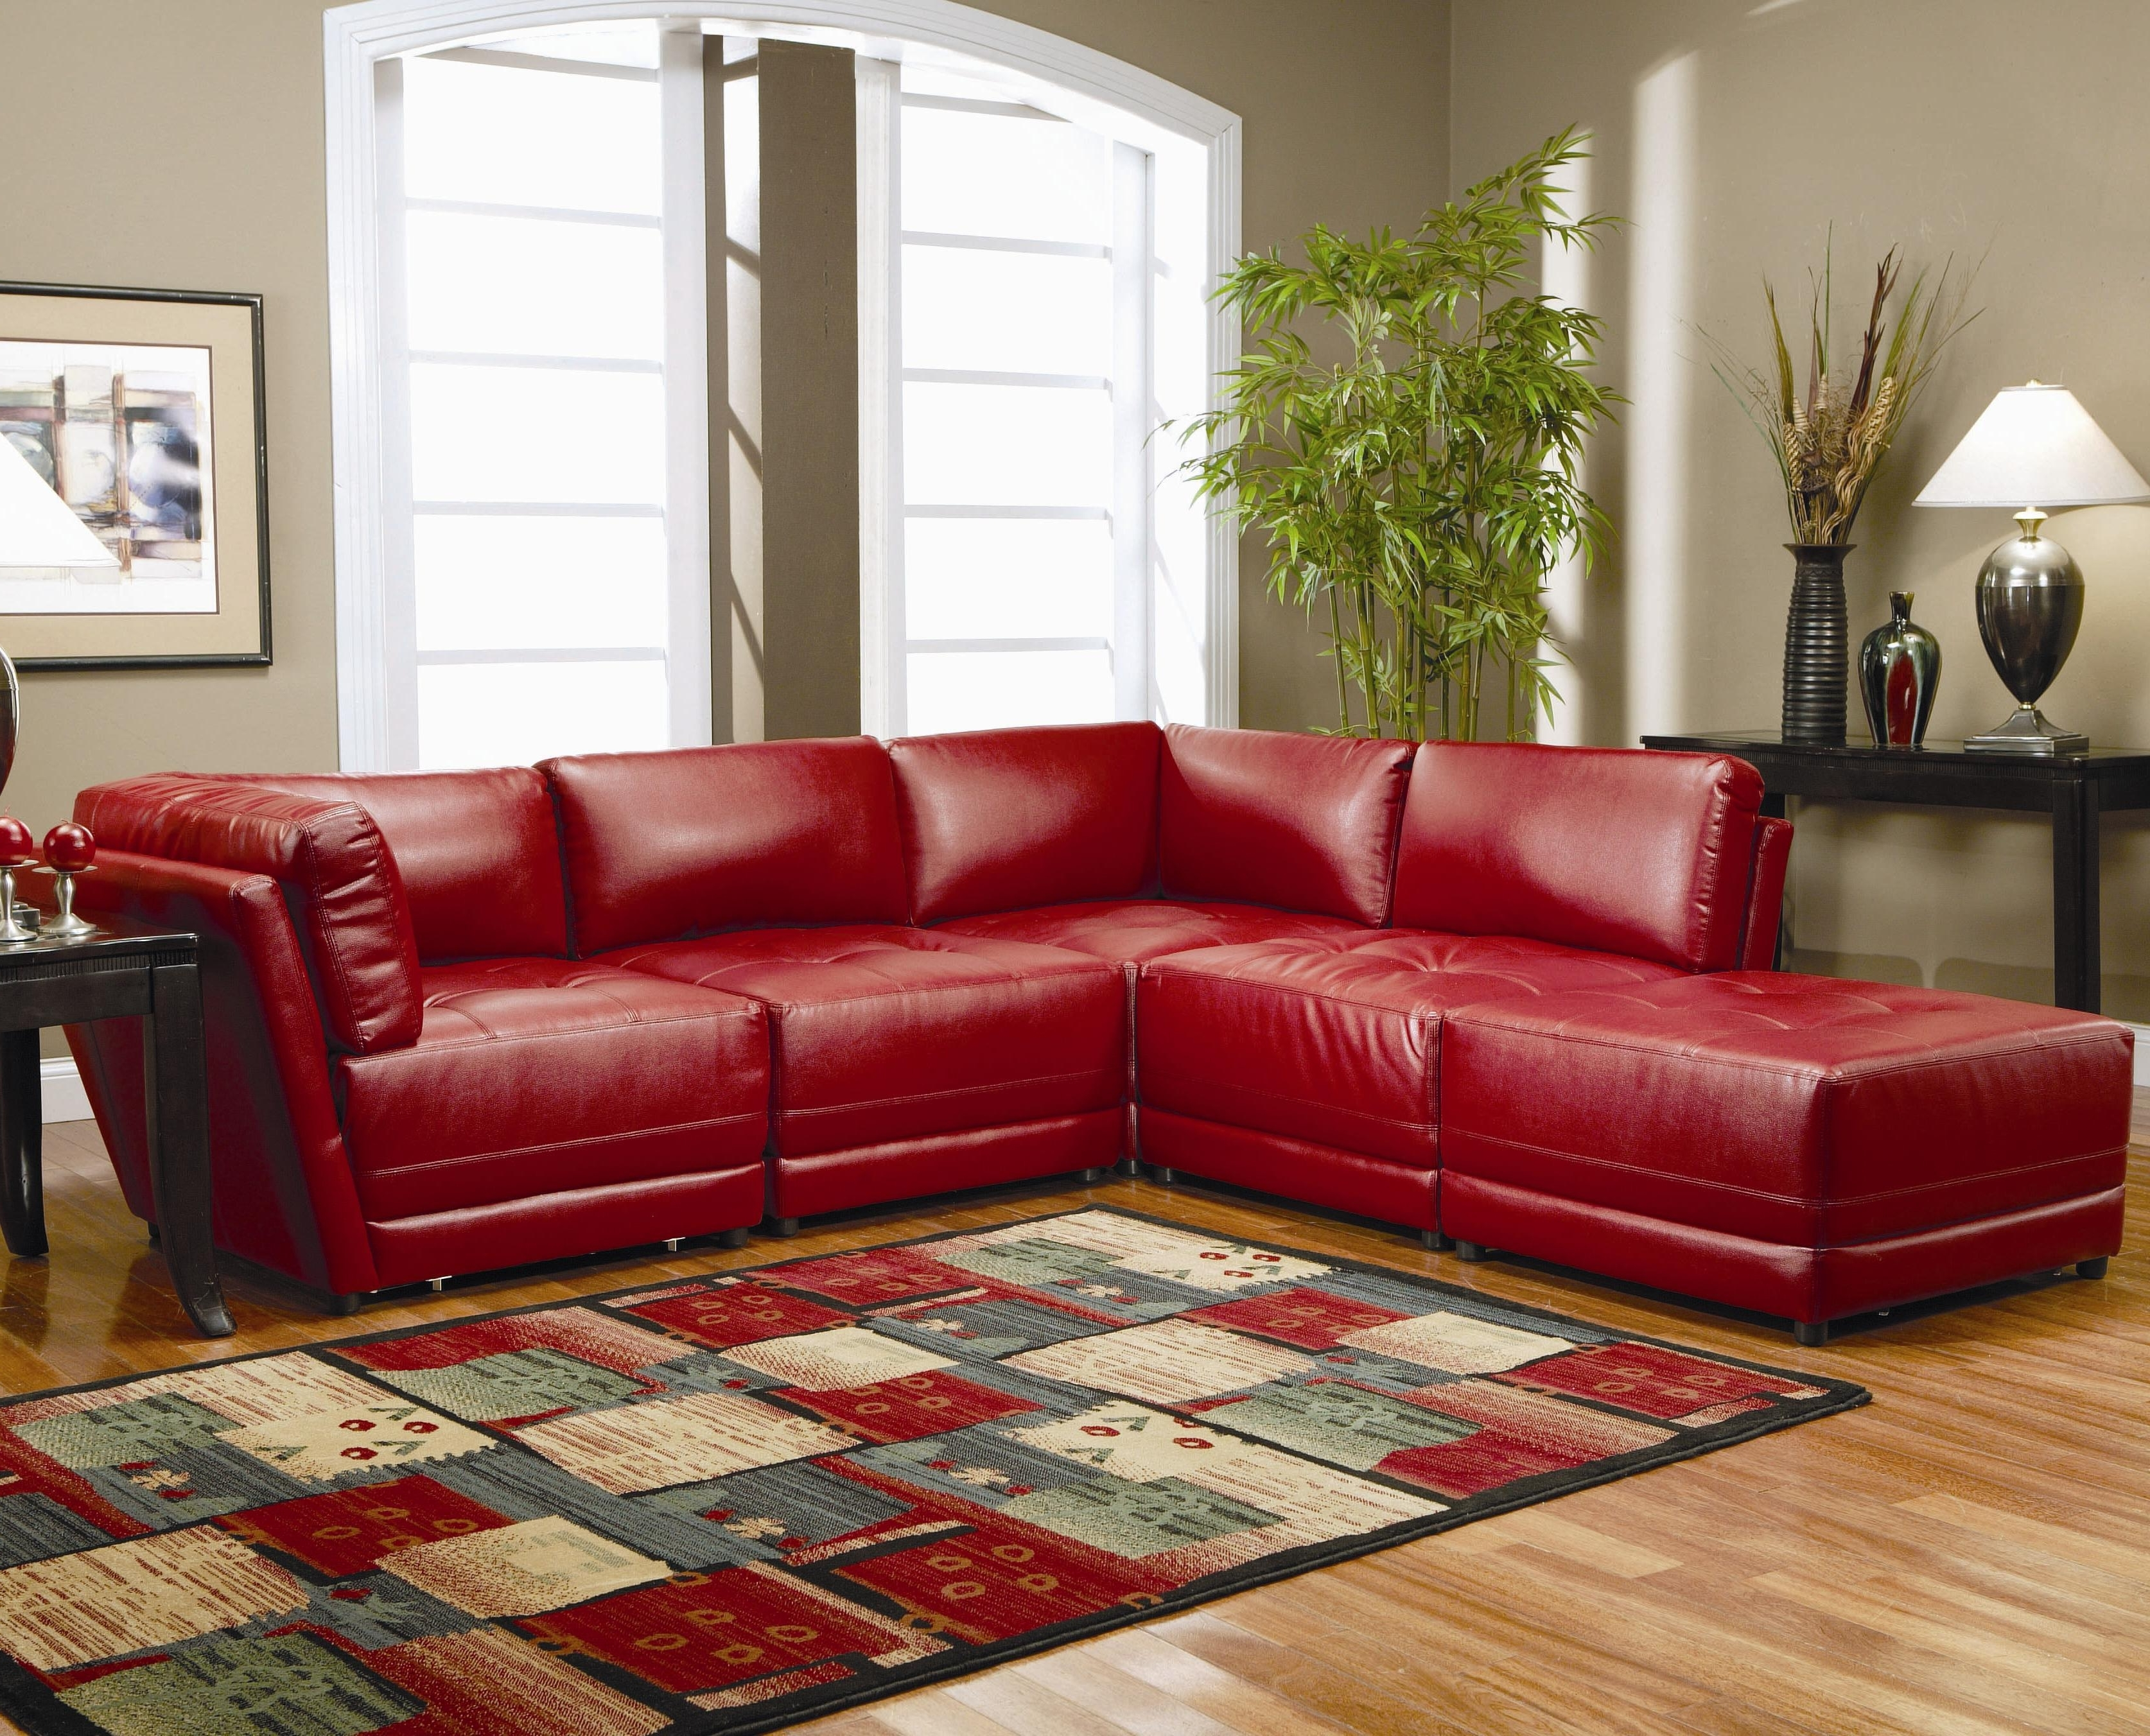 palliser sofa item dealer locator flex ahfa sectional s jerome store reclining furniture products cupboard b